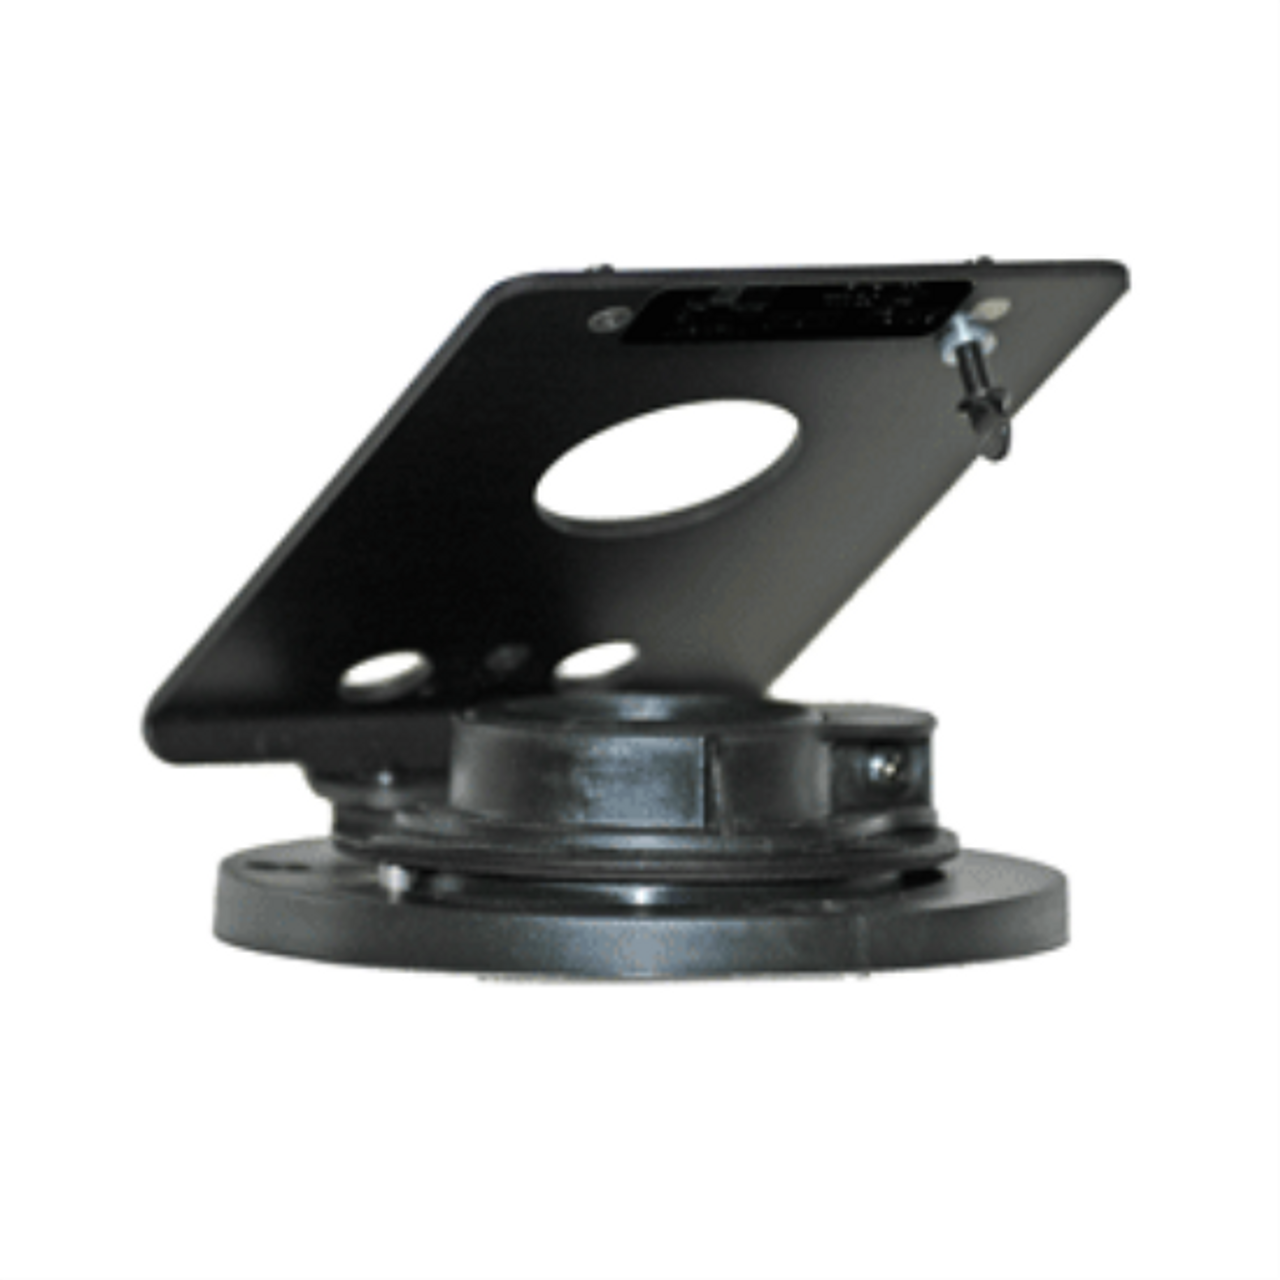 Swivel Stands Credit Card Stand Fixed Angle Open Hole Hypercom T4210